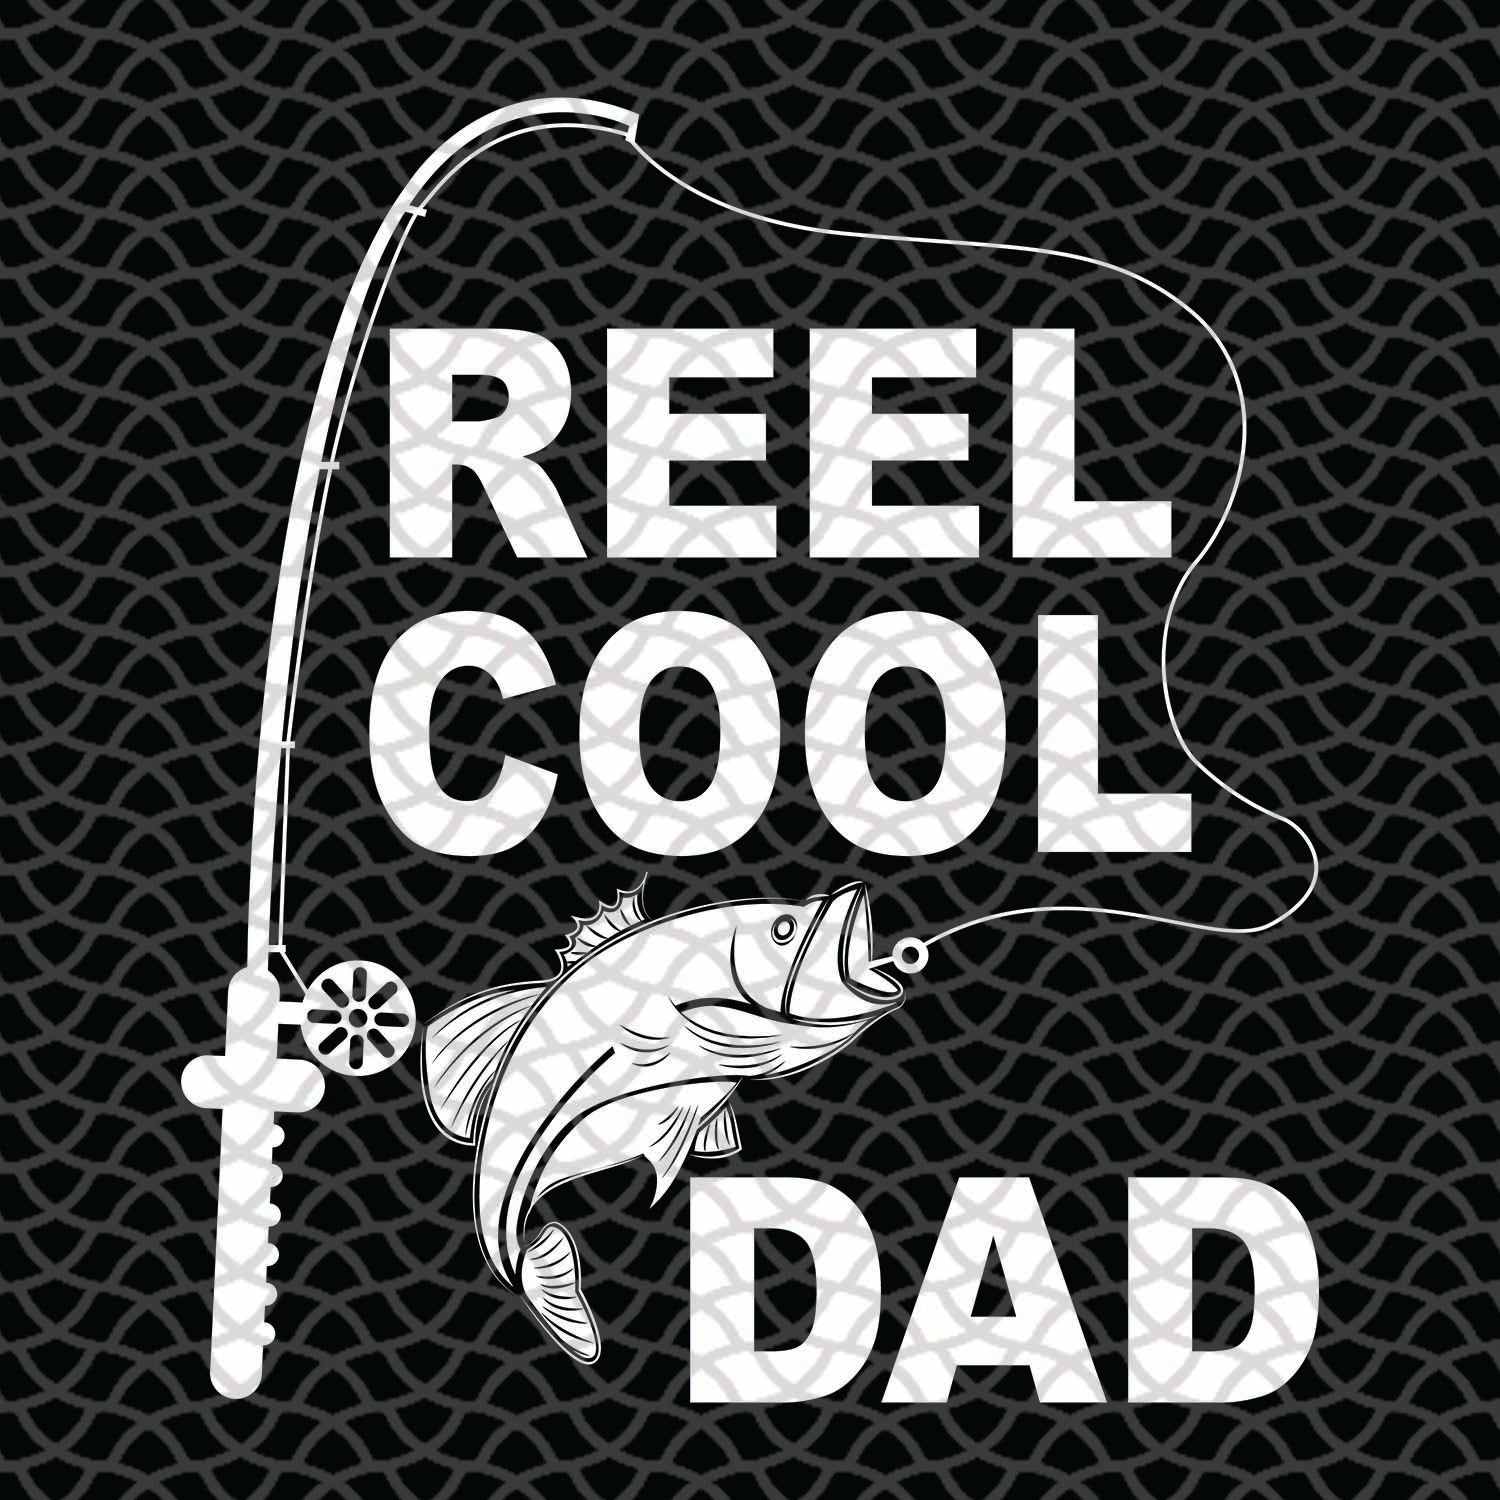 Reel cool dad,  dad svg, dad gift, dad life, dad birthday, father's day, father gift, father shirt, family svg , family shirt,family gift,trending svg, Files For Silhouette, Files For Cricut, SVG, DXF, EPS, PNG, Instant Download